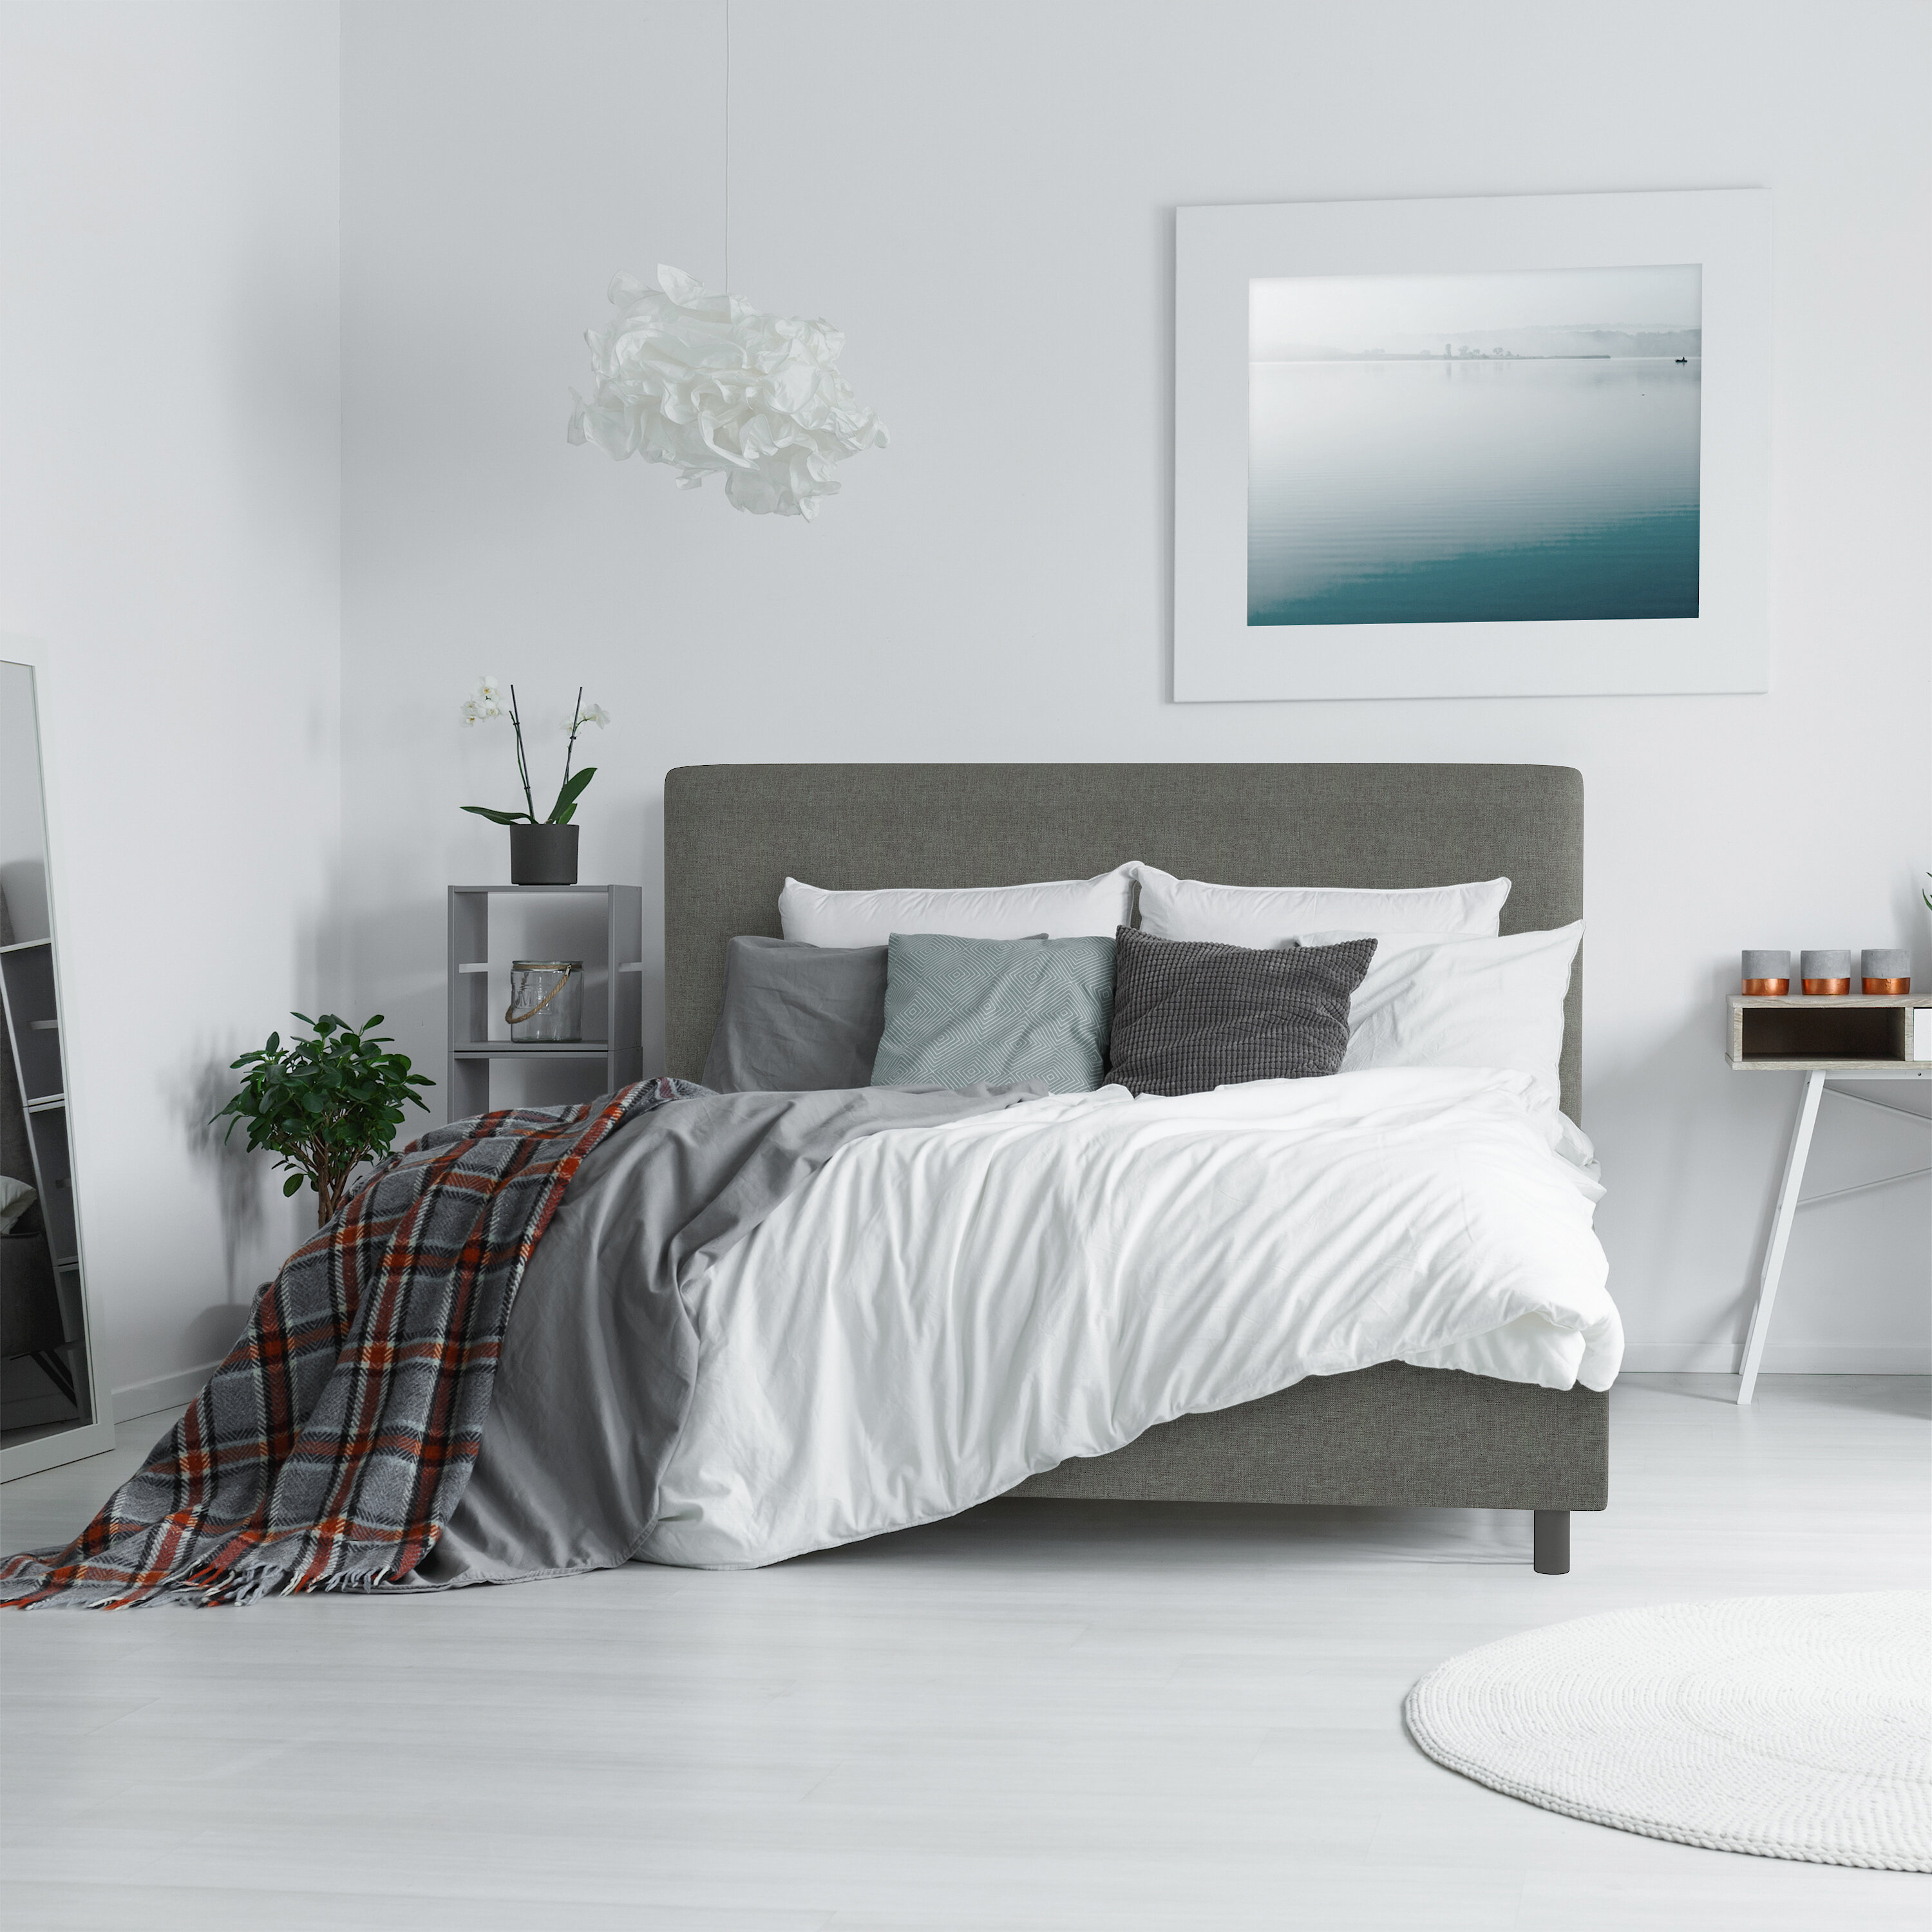 California King Upholstered Beds Up To 60 Off This Labor Day Wayfair